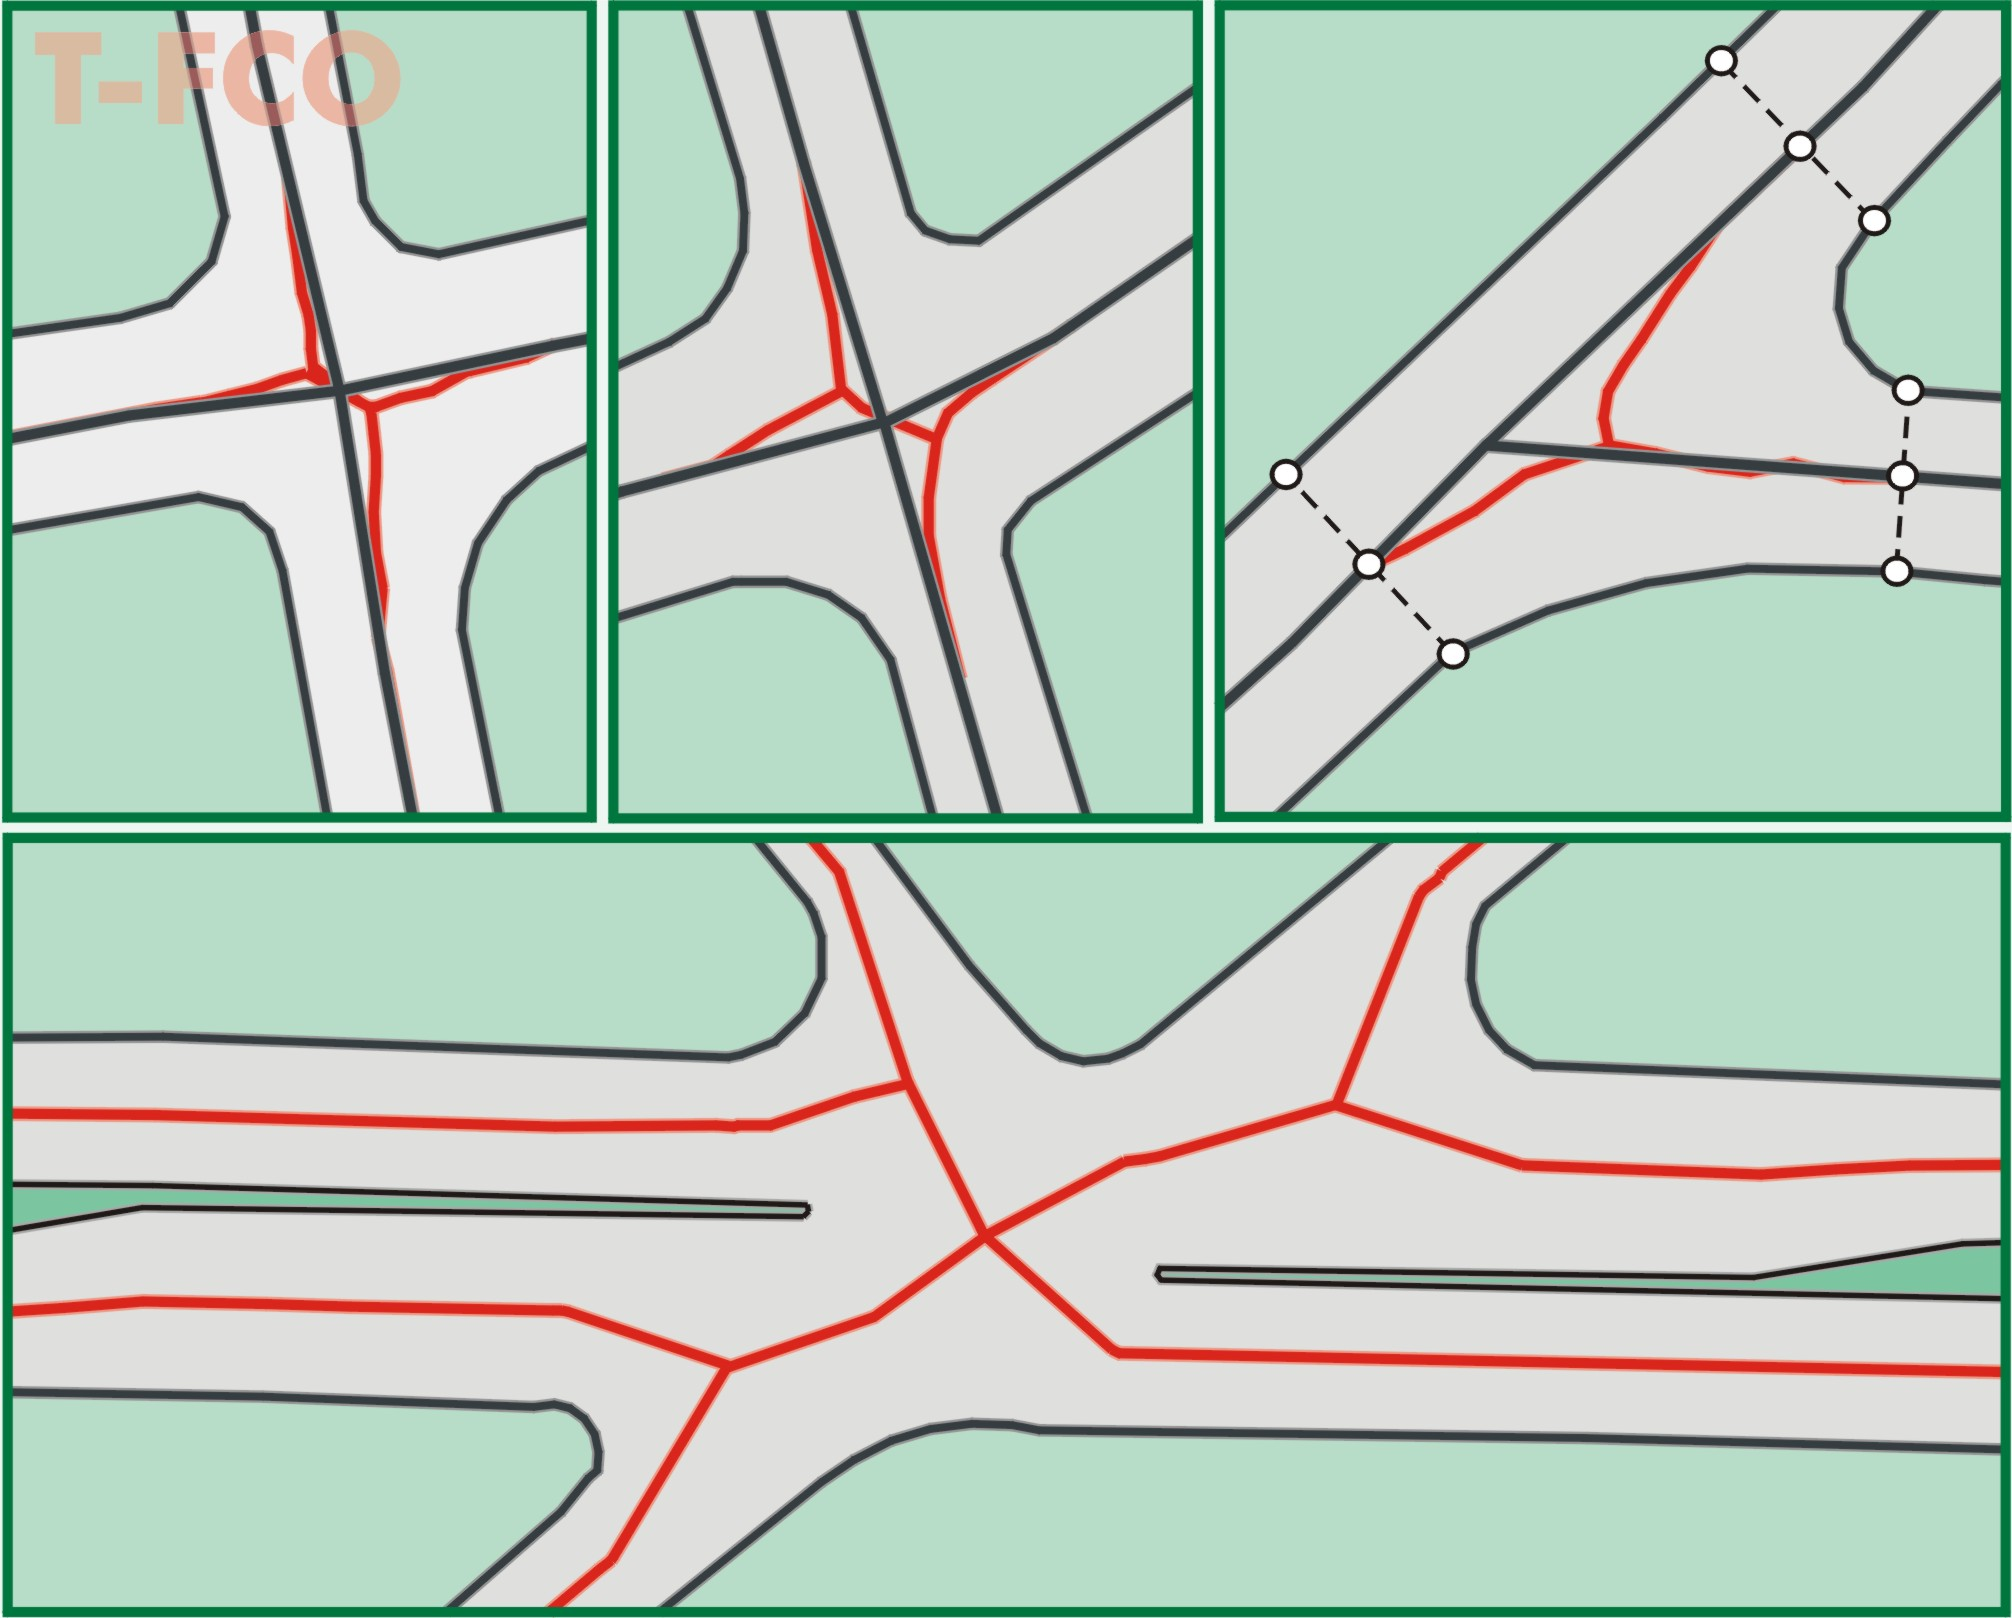 Rectification of intersections